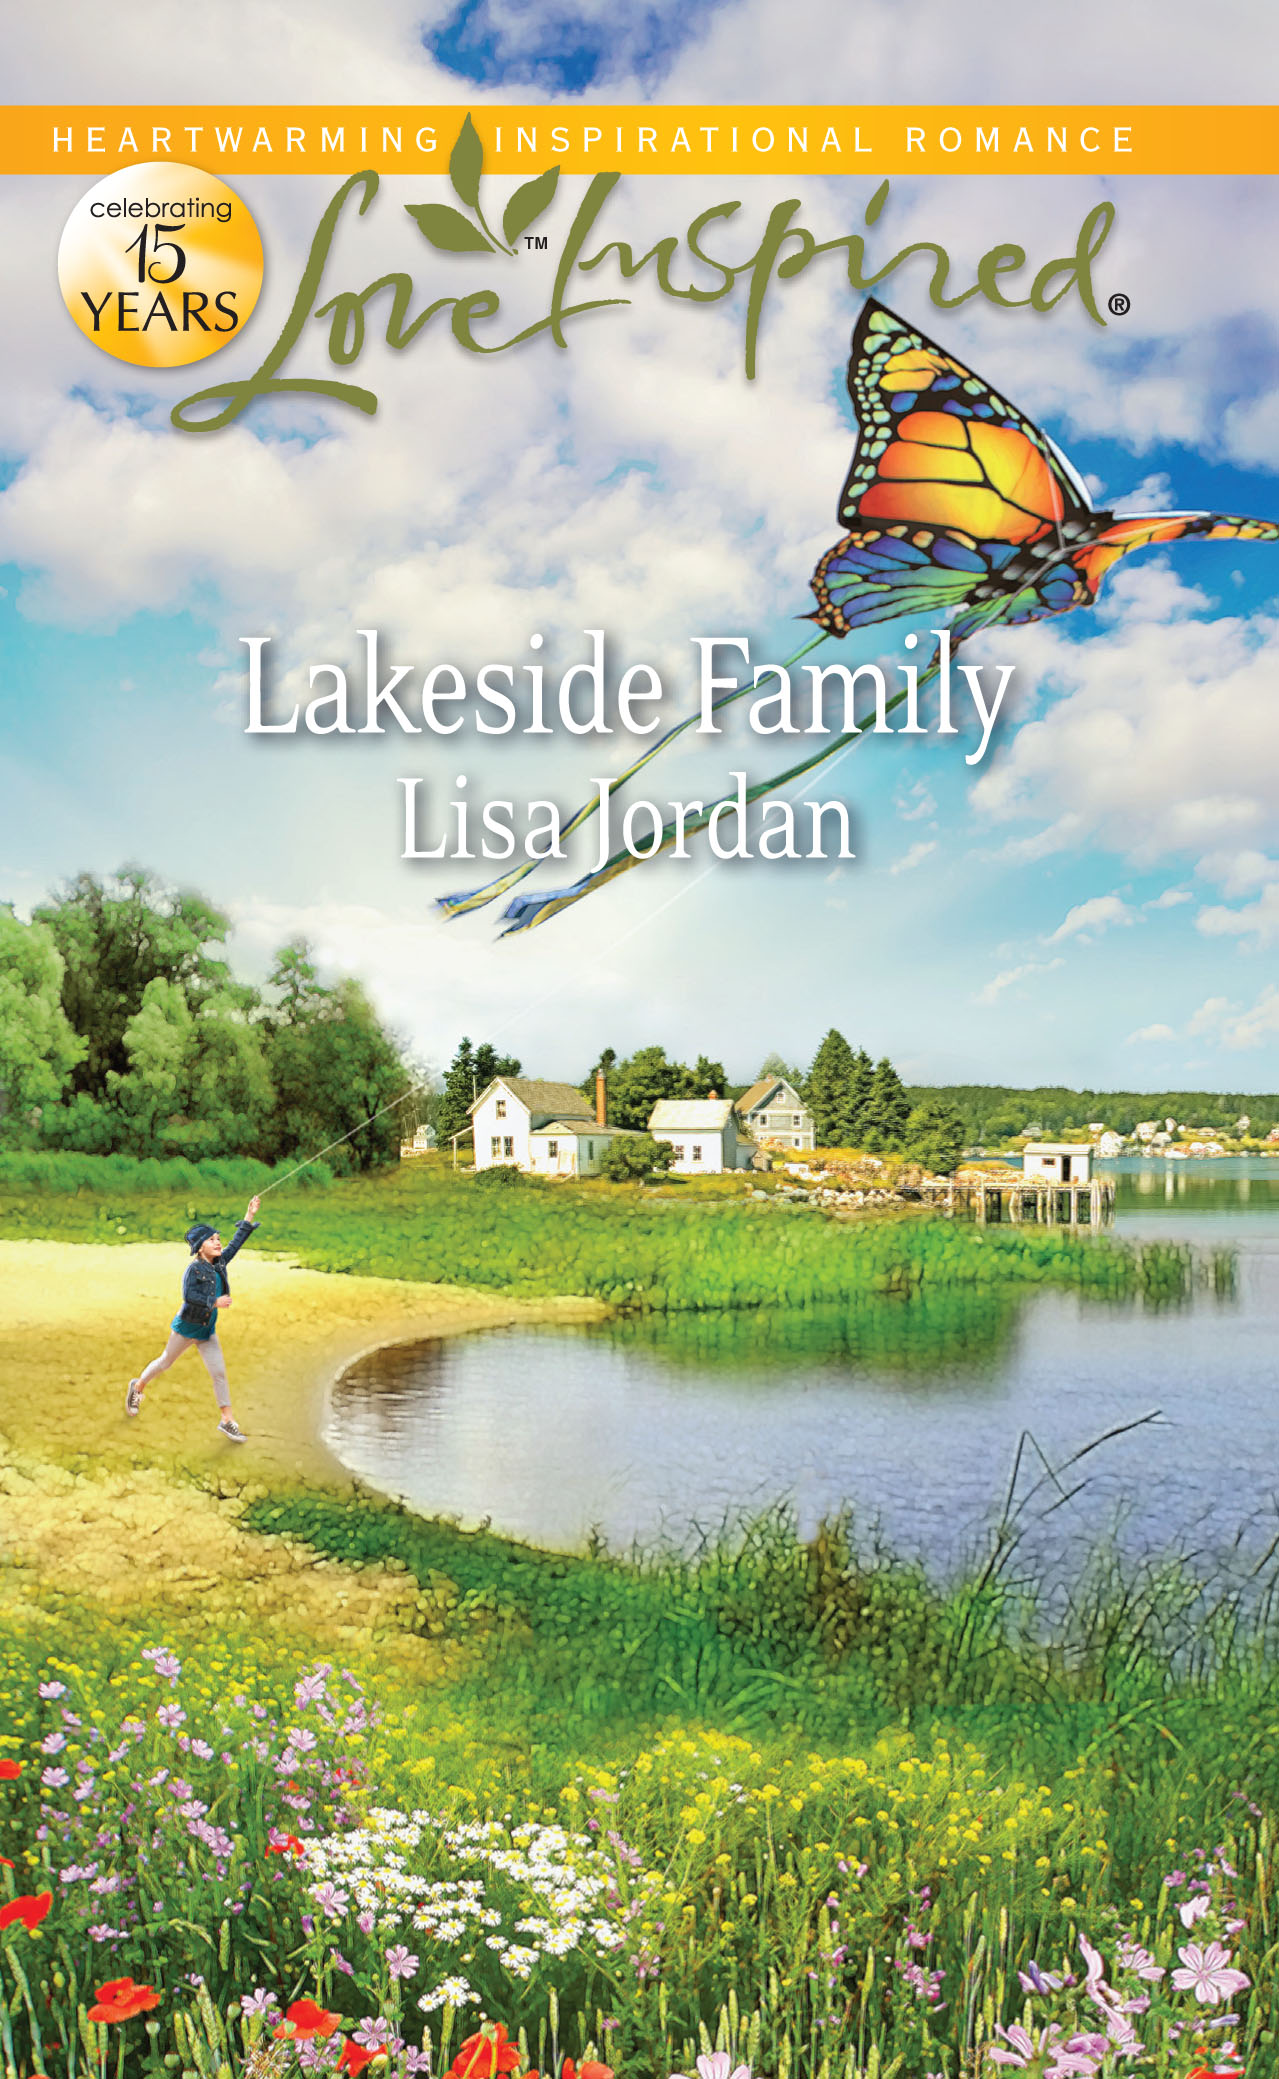 Lakeside Family Book Release Celebration!